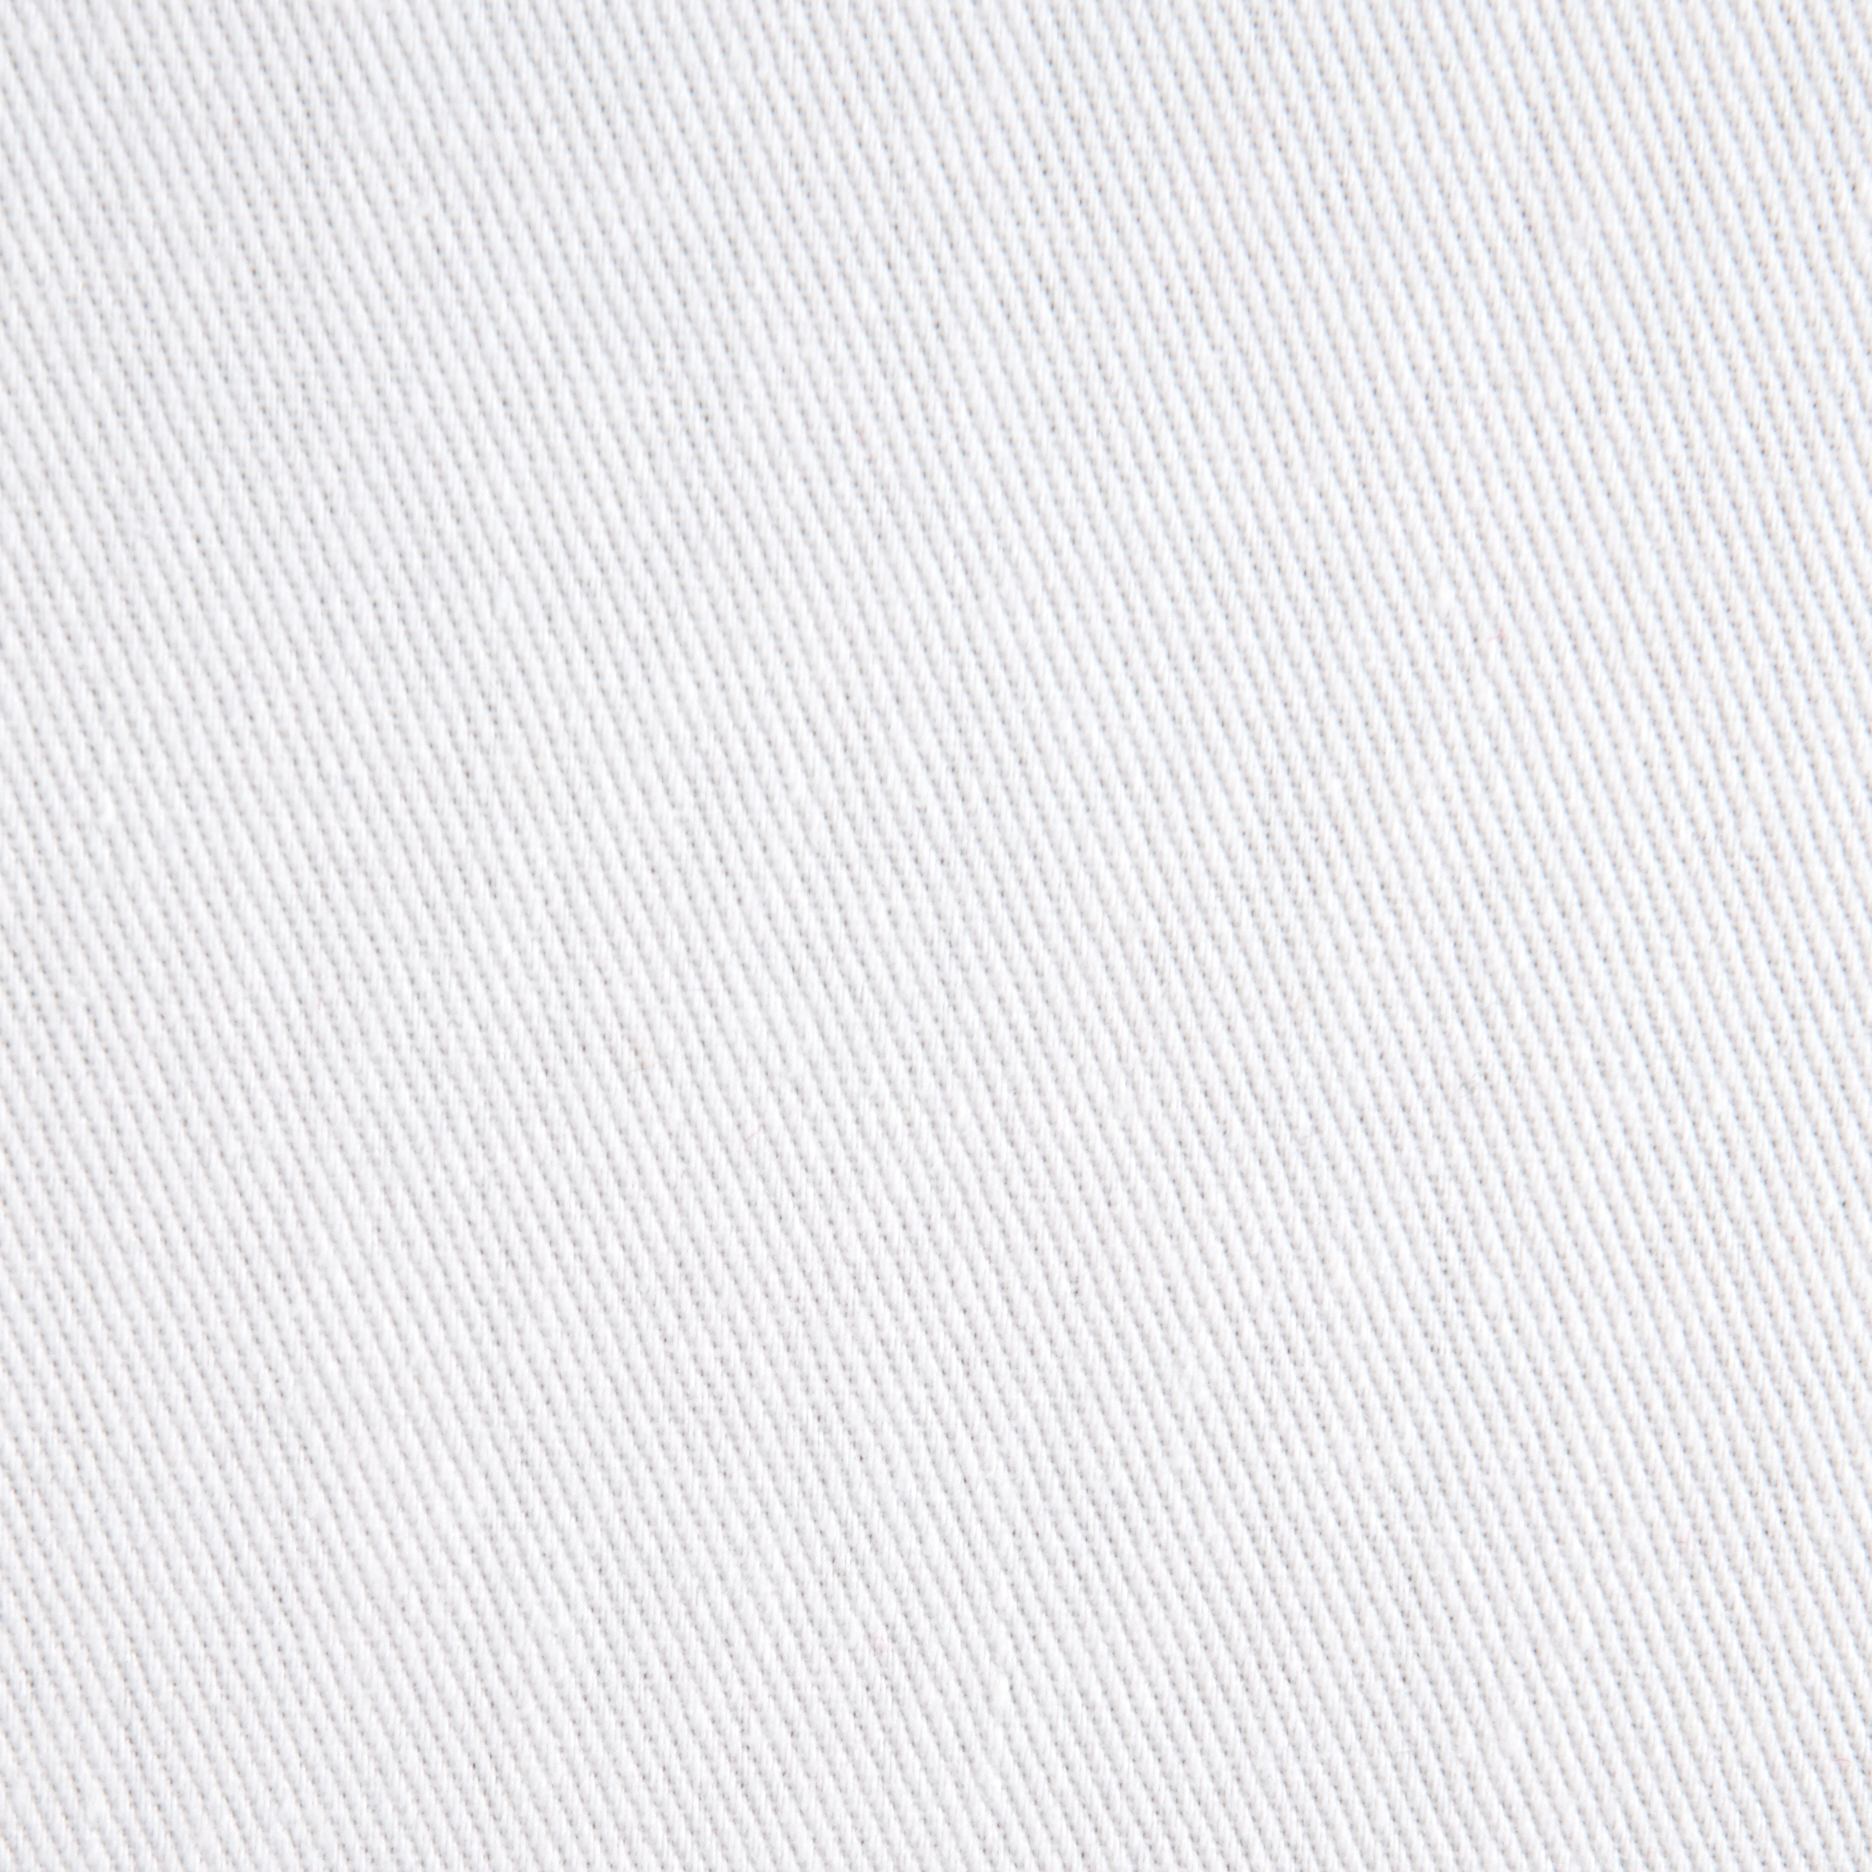 Cotton Twill White Fabric by Textile Creations in USA